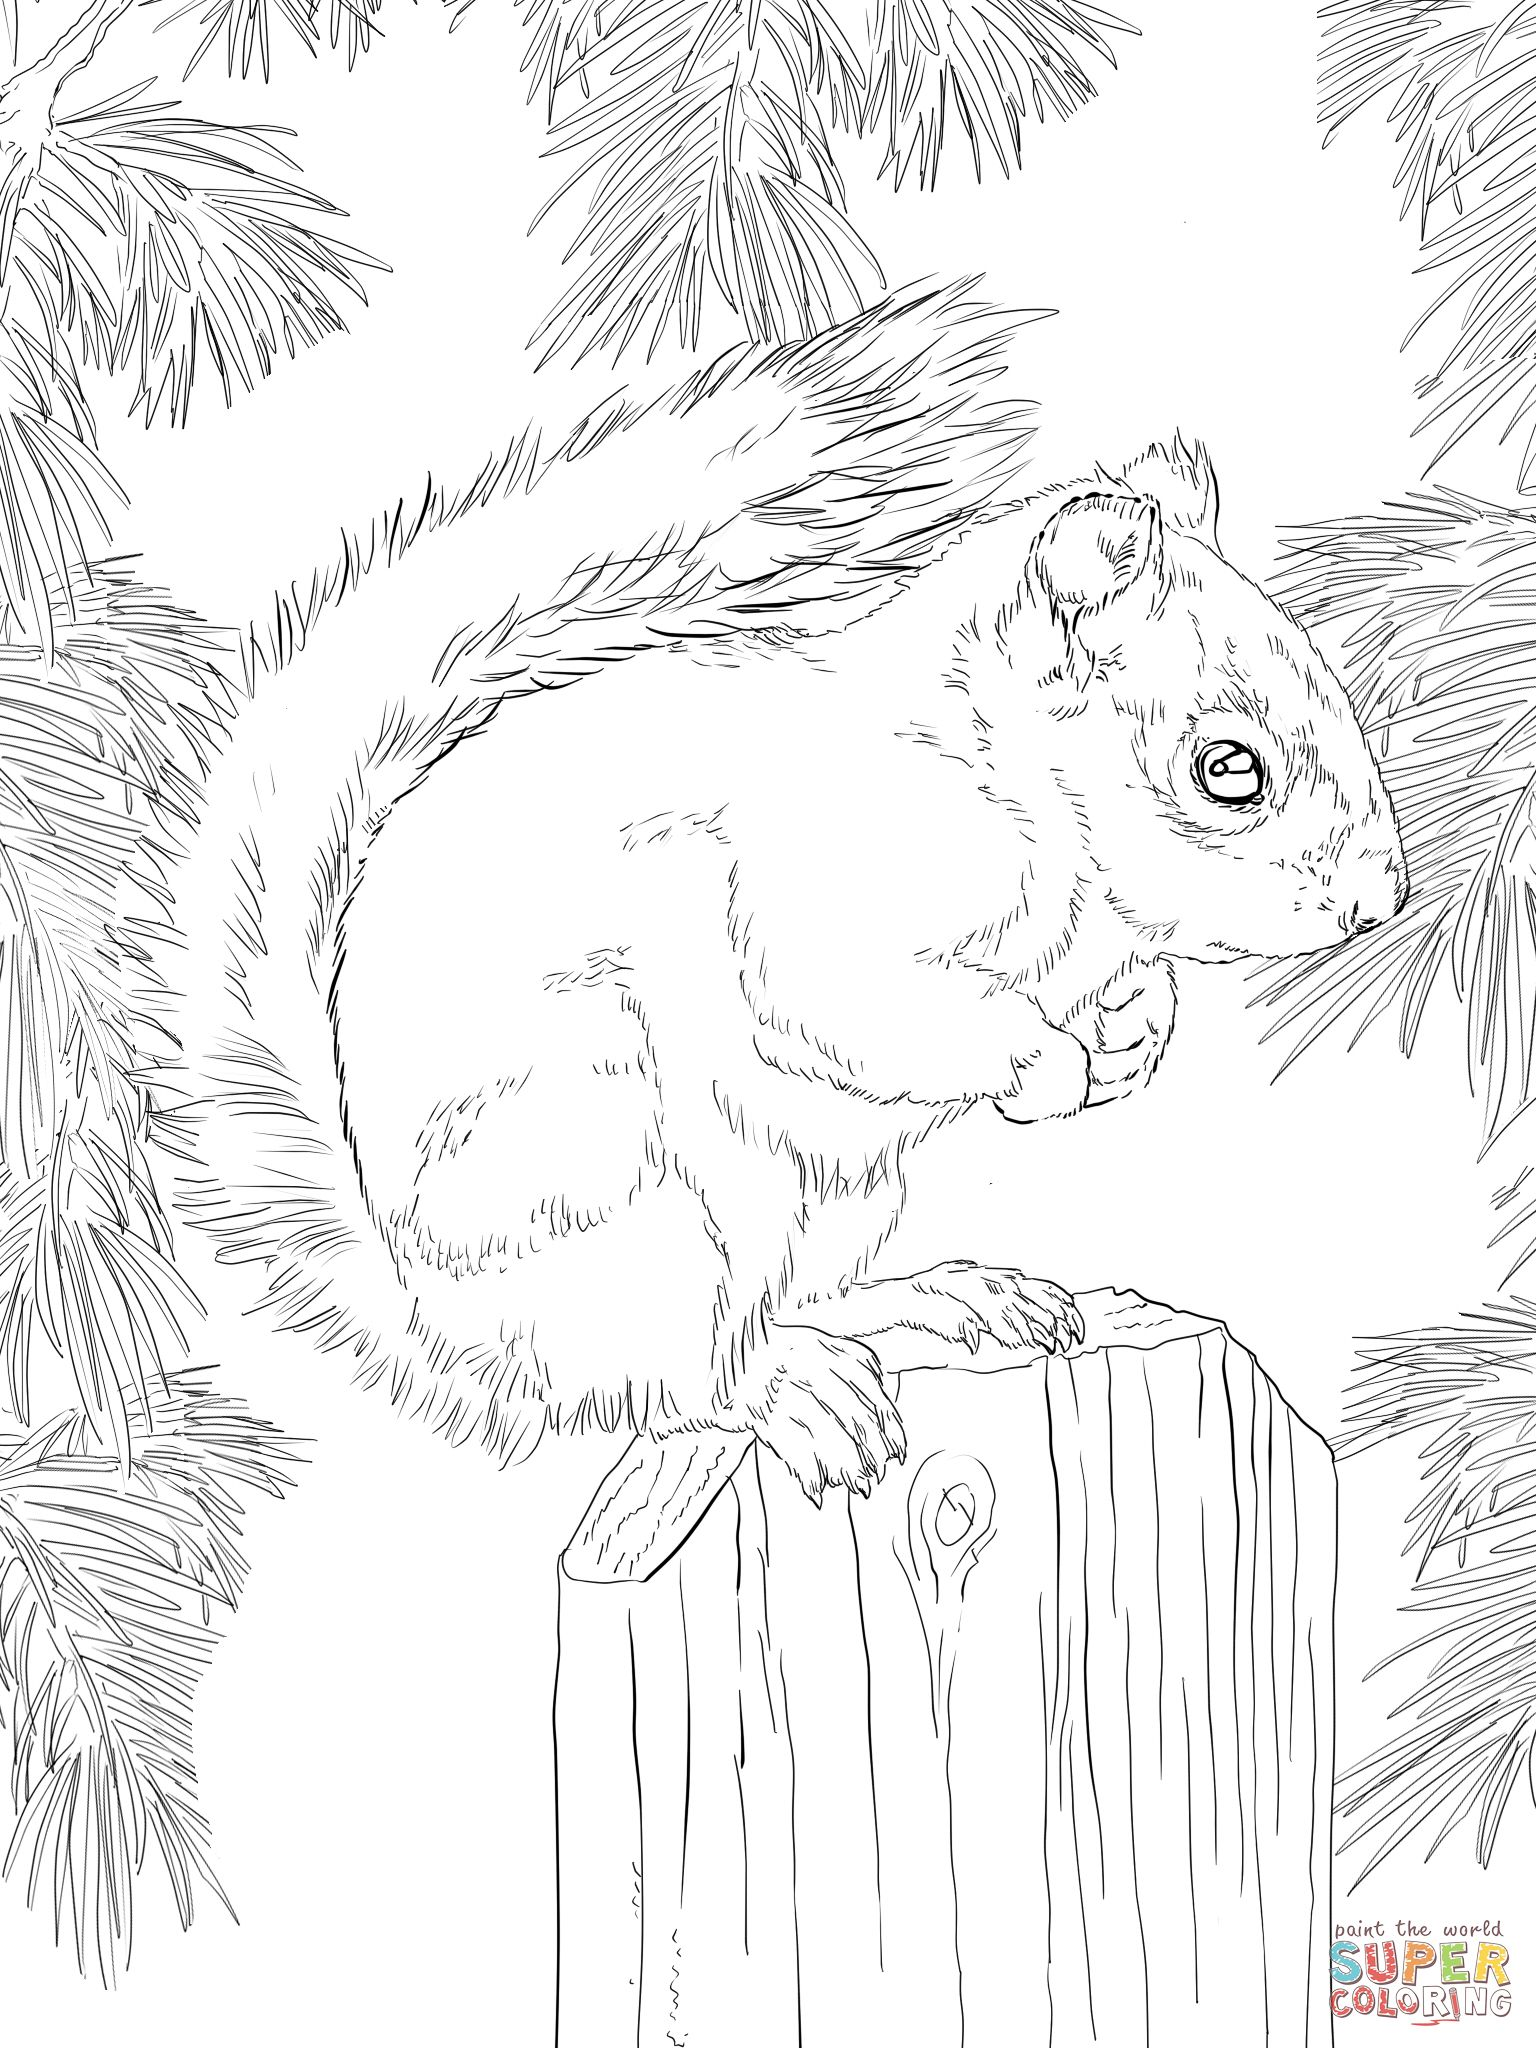 american red squirrel coloring pagejpg 15362048